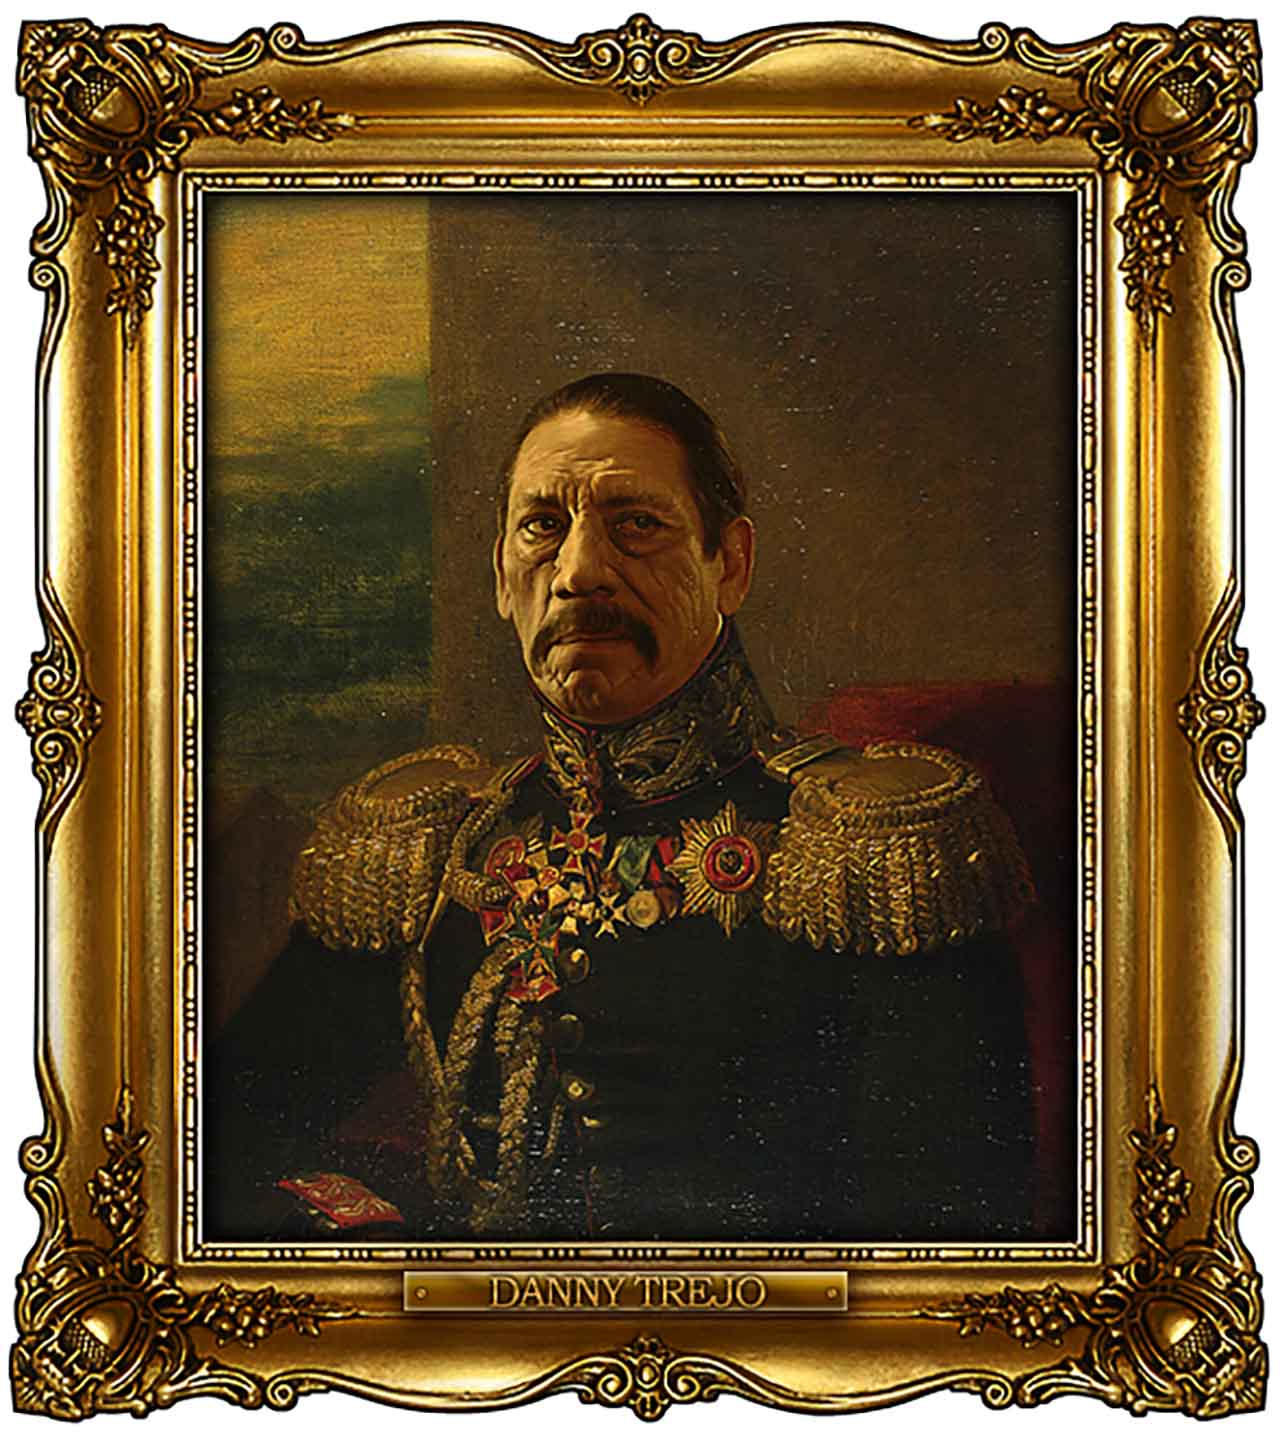 Artist Turns Famous Actors Into Russian Generals - Danny Trejo